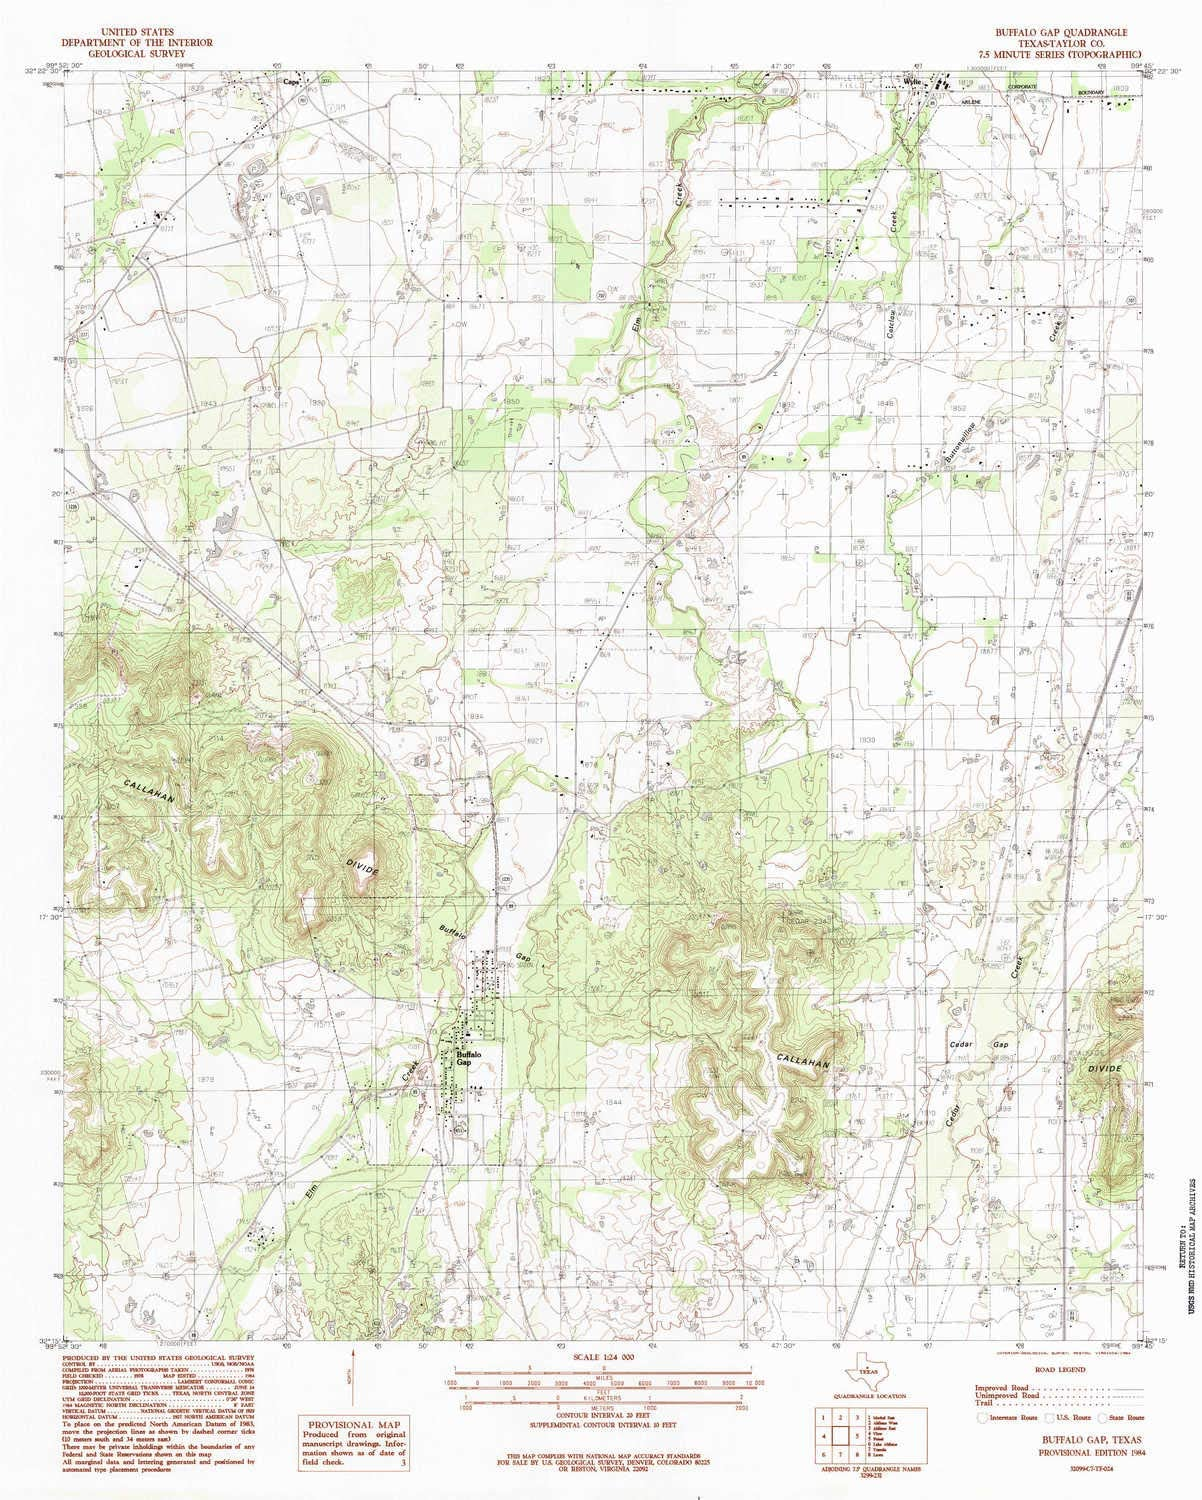 YellowMaps Buffalo Gap TX topo map 7.5 X 7.5 Minute 1:24000 Scale 26.9 x 23 in Historical Updated 1984 1984